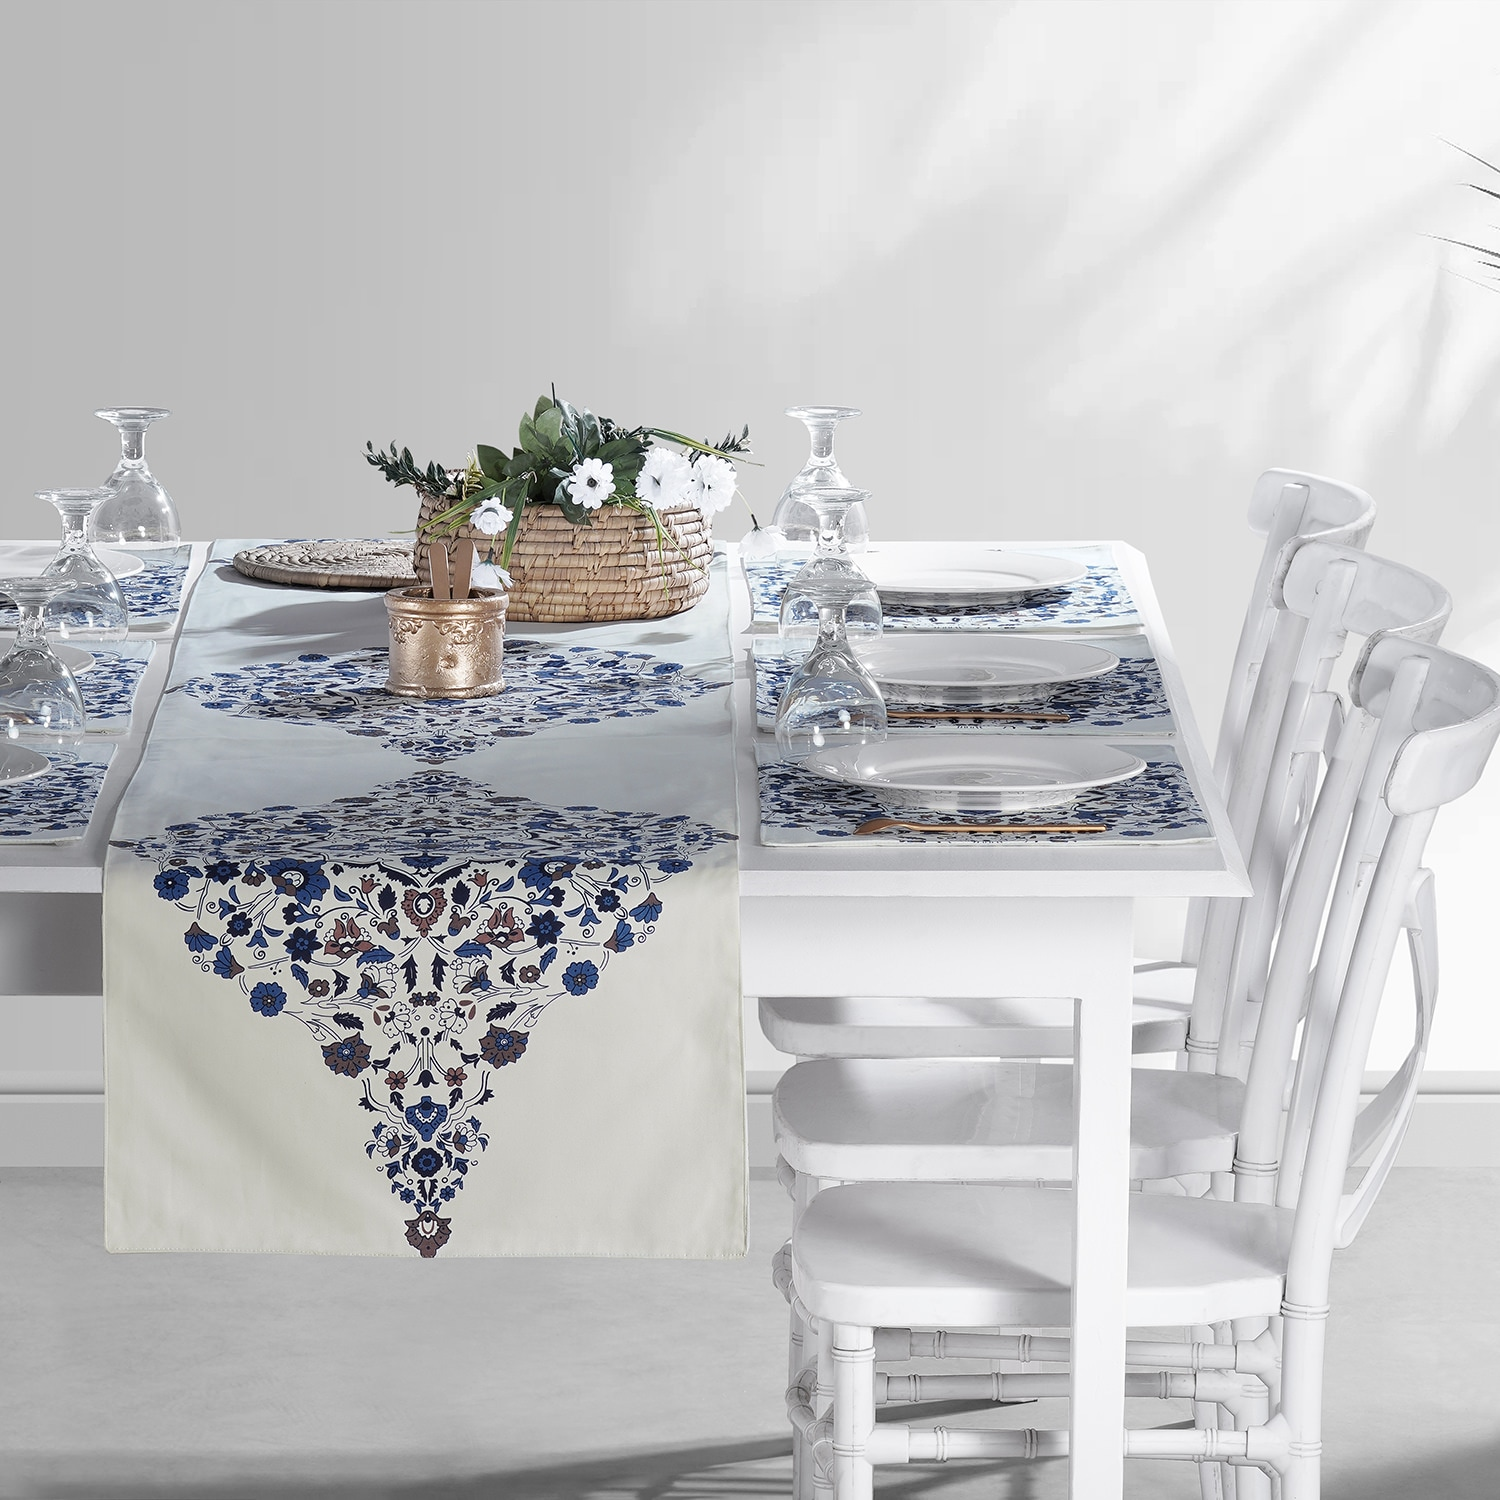 Kerala Blue Printed Cotton Table Runner & Placemats